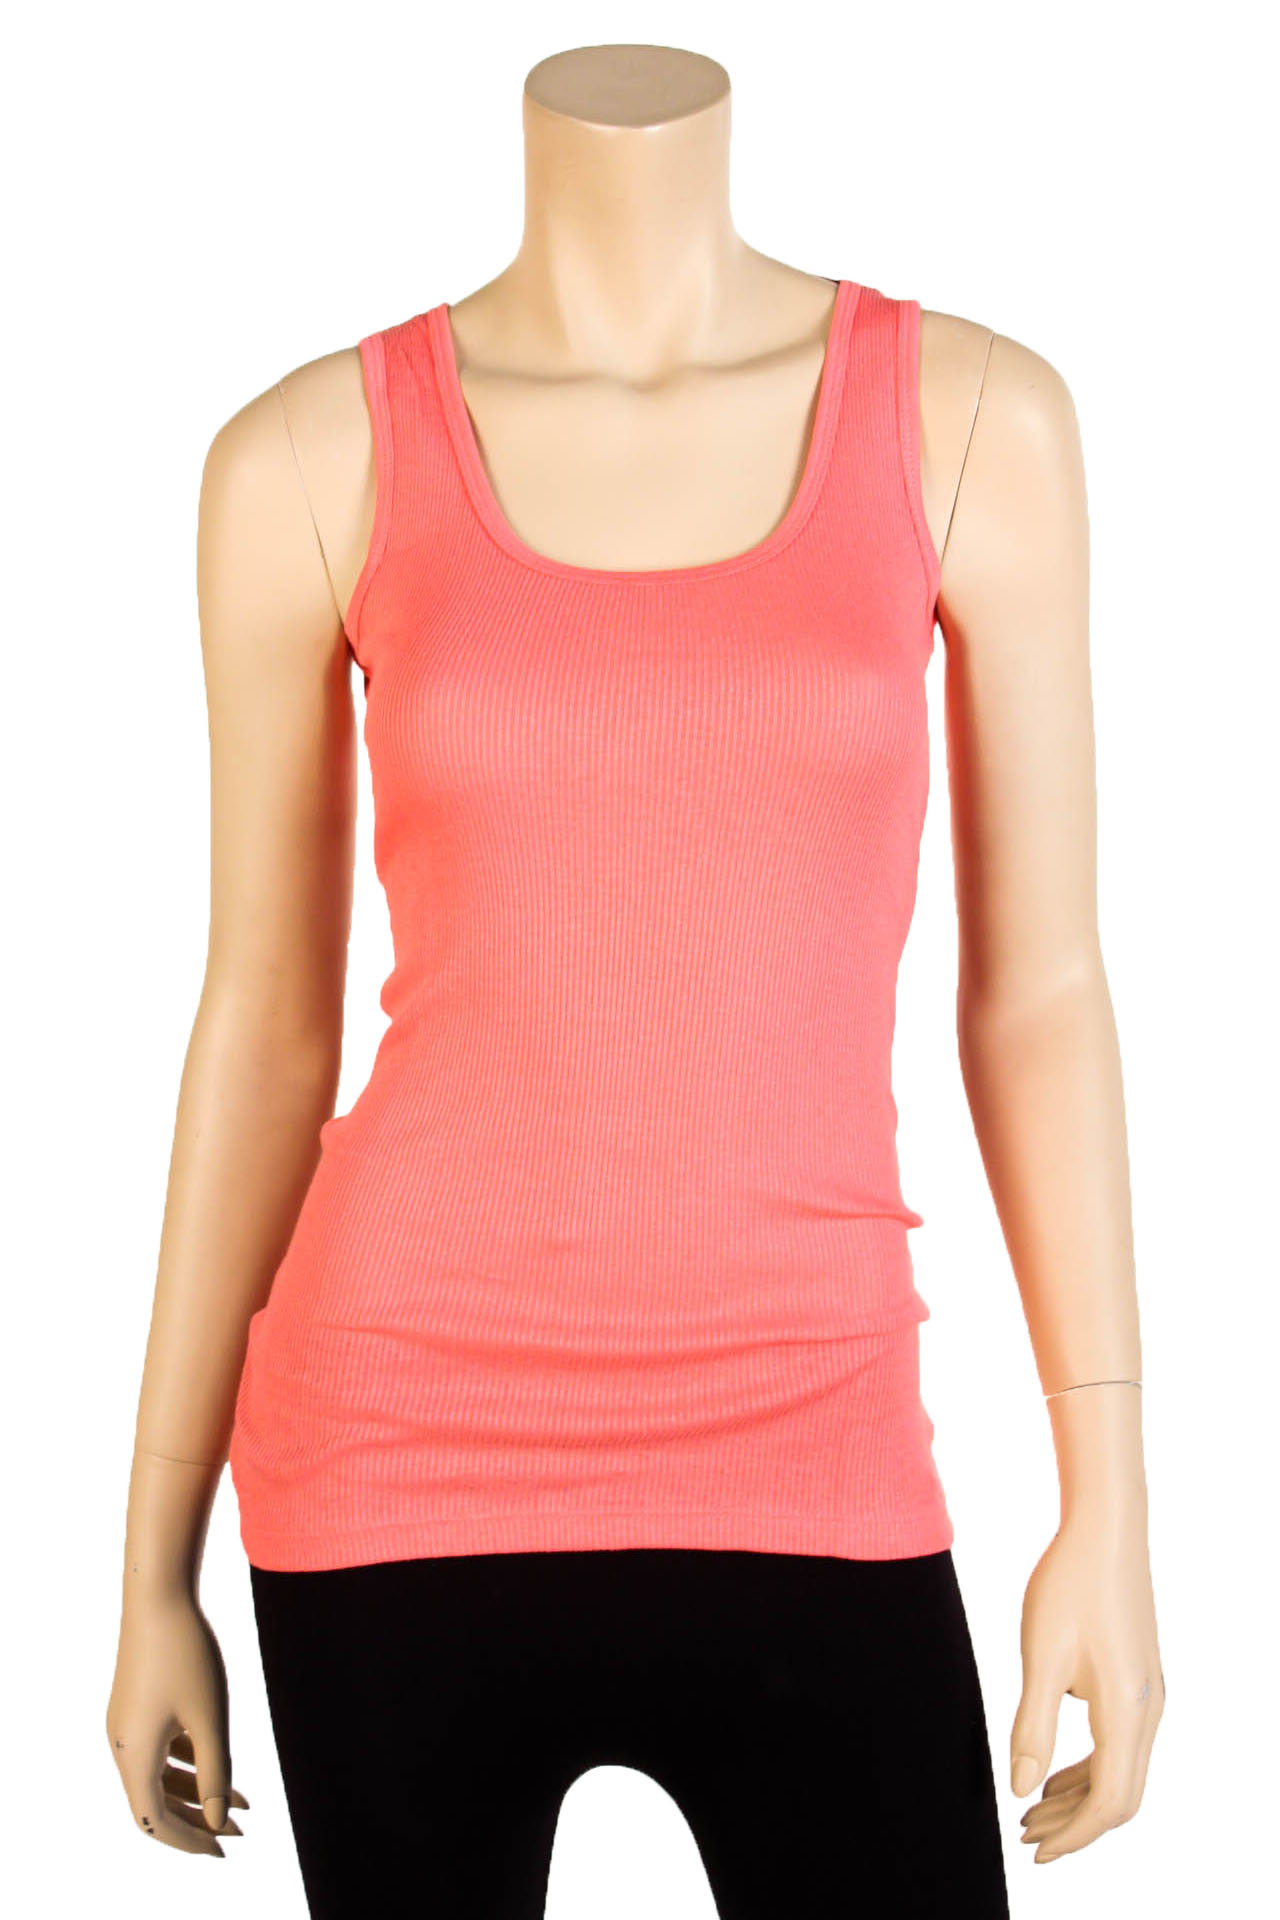 Women Workout Shirt